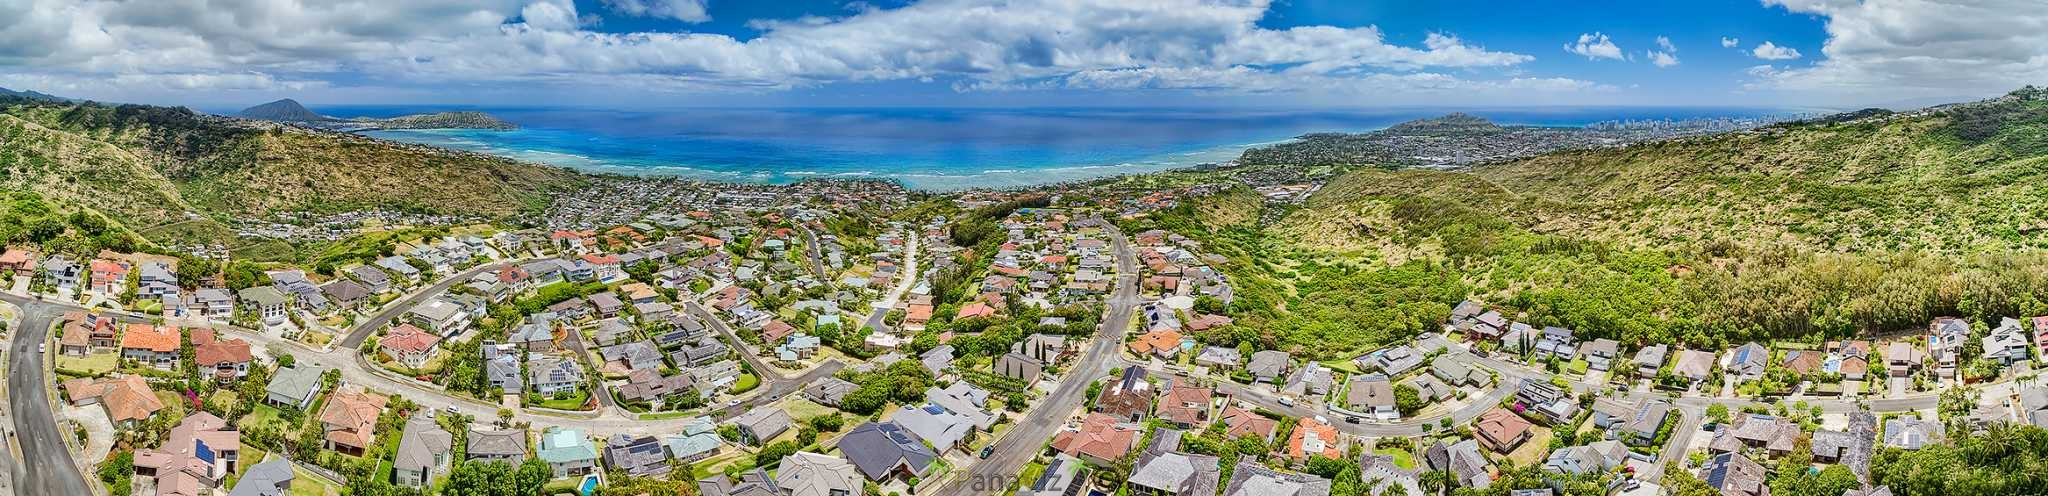 Your home's expansive view could reach from Koko Head to Diamond Head.